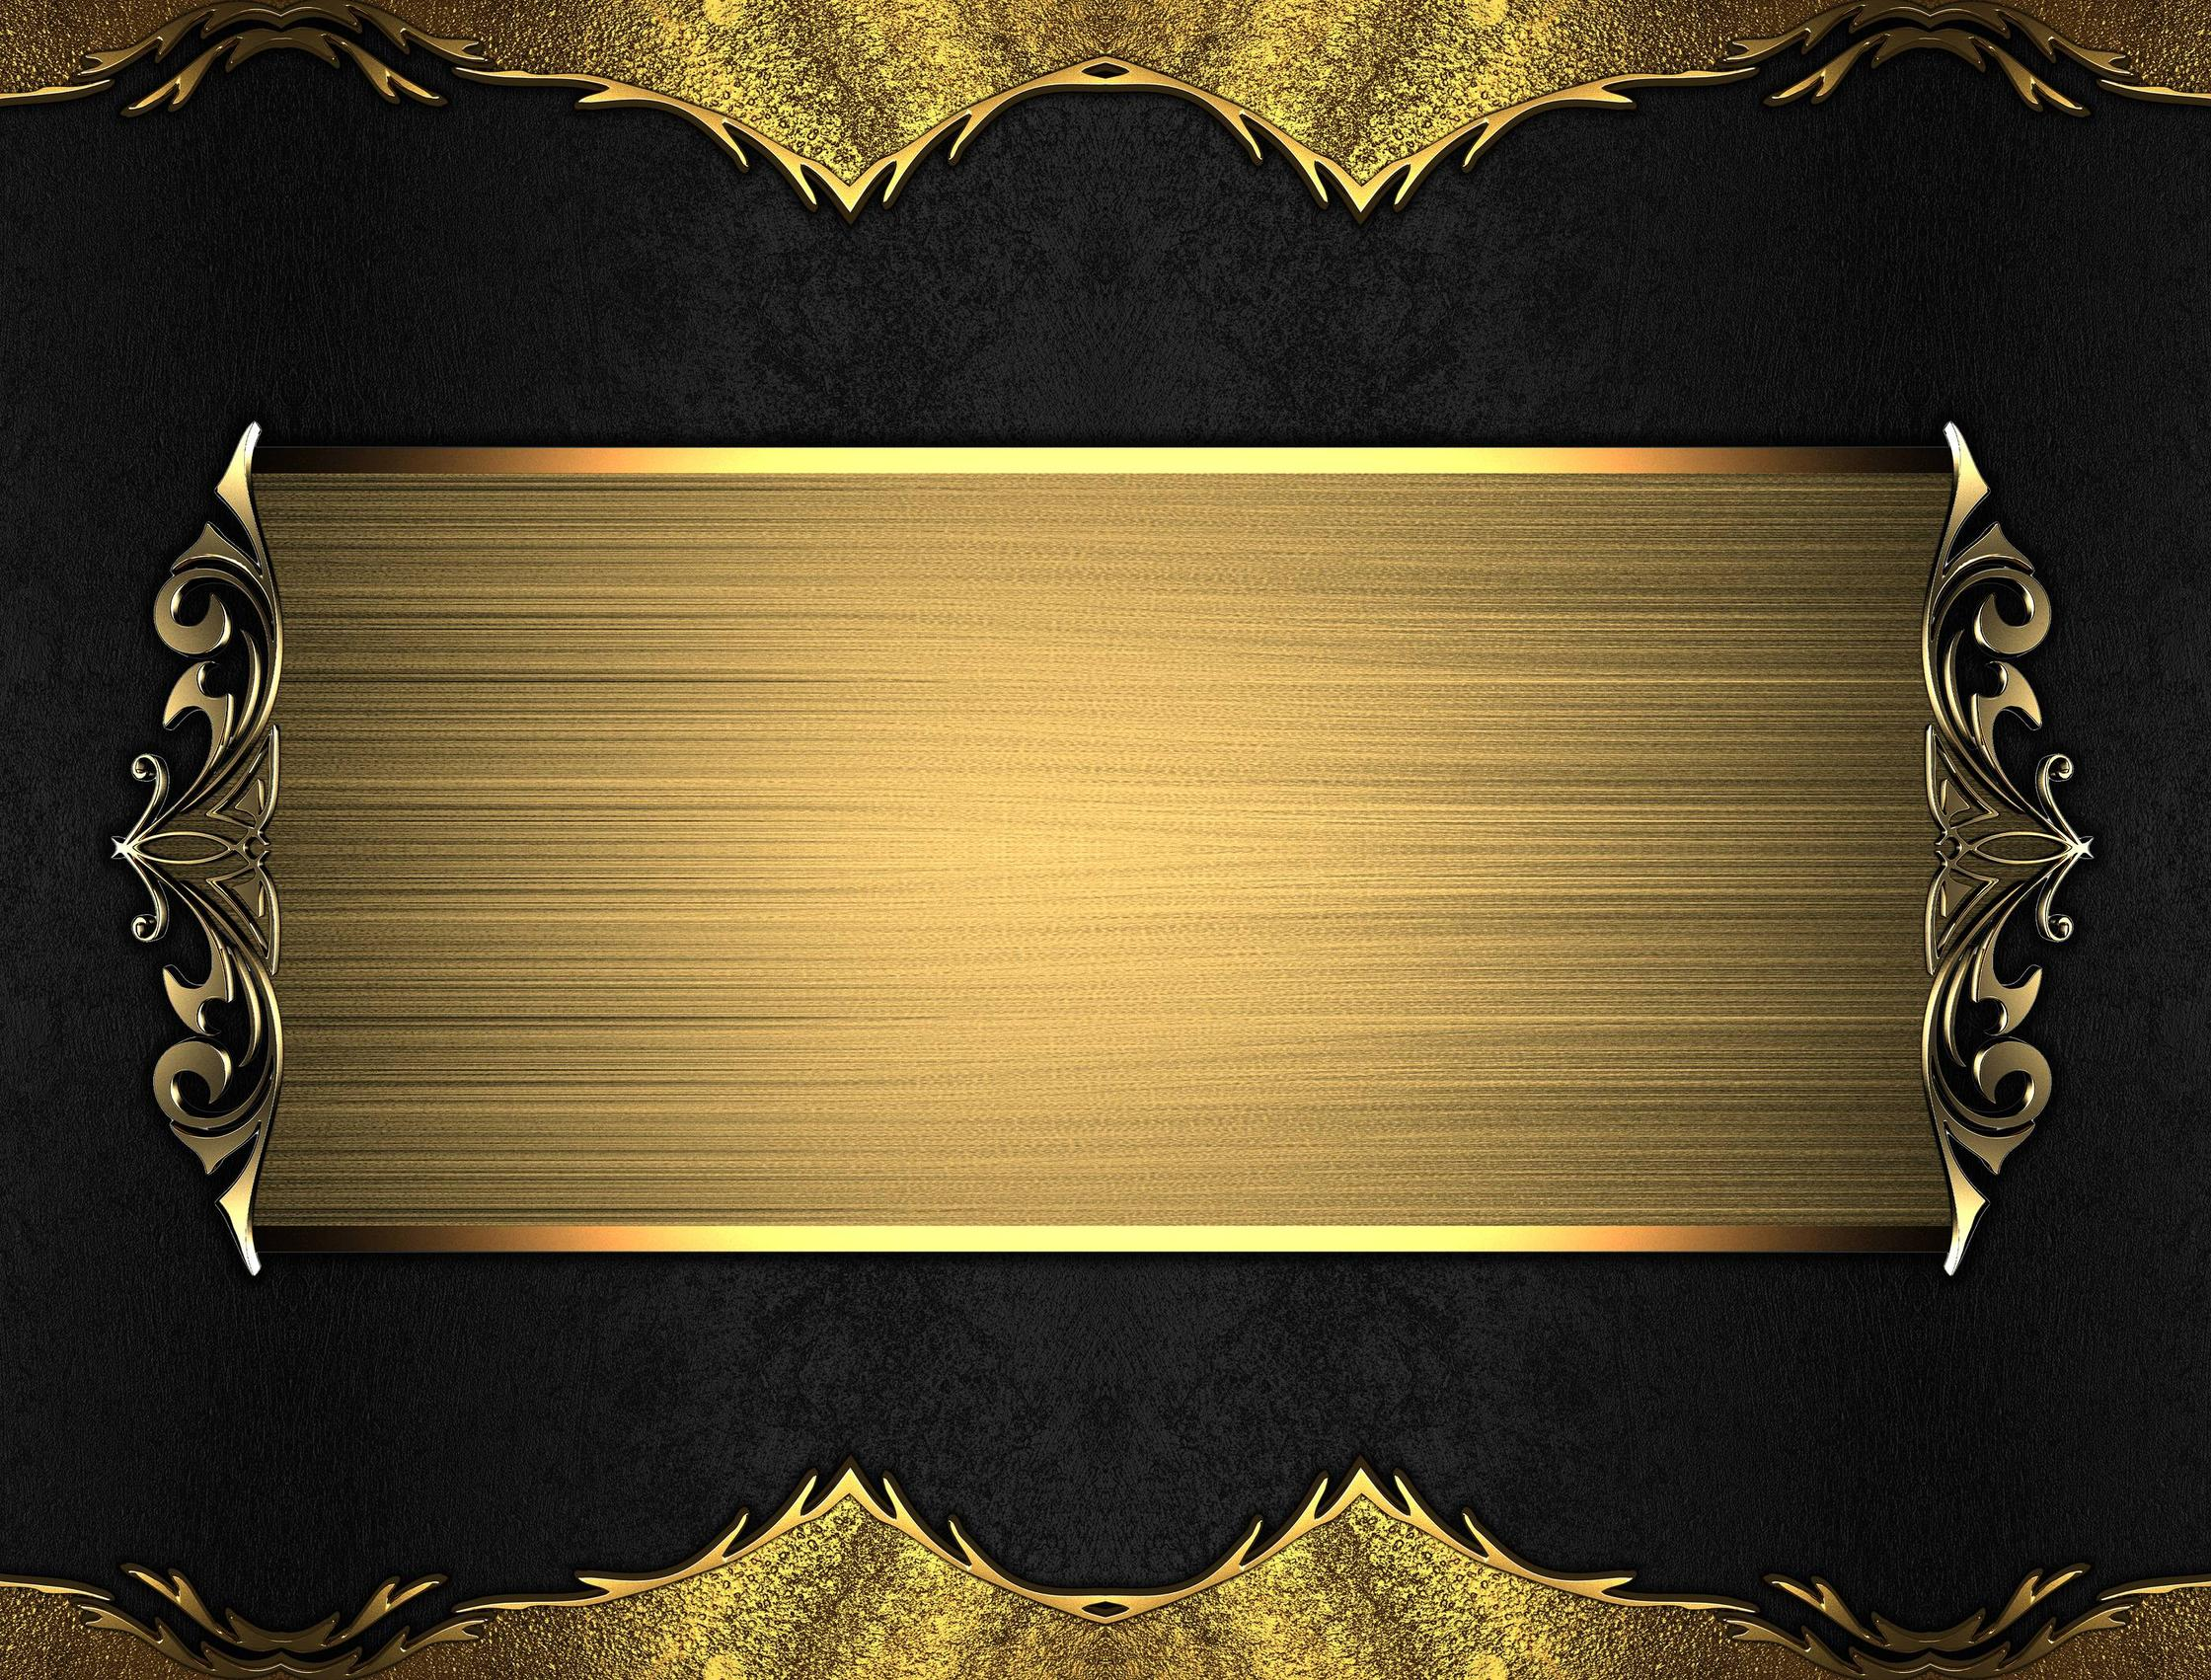 Gold And Black Backgrounds - WallpaperSafari